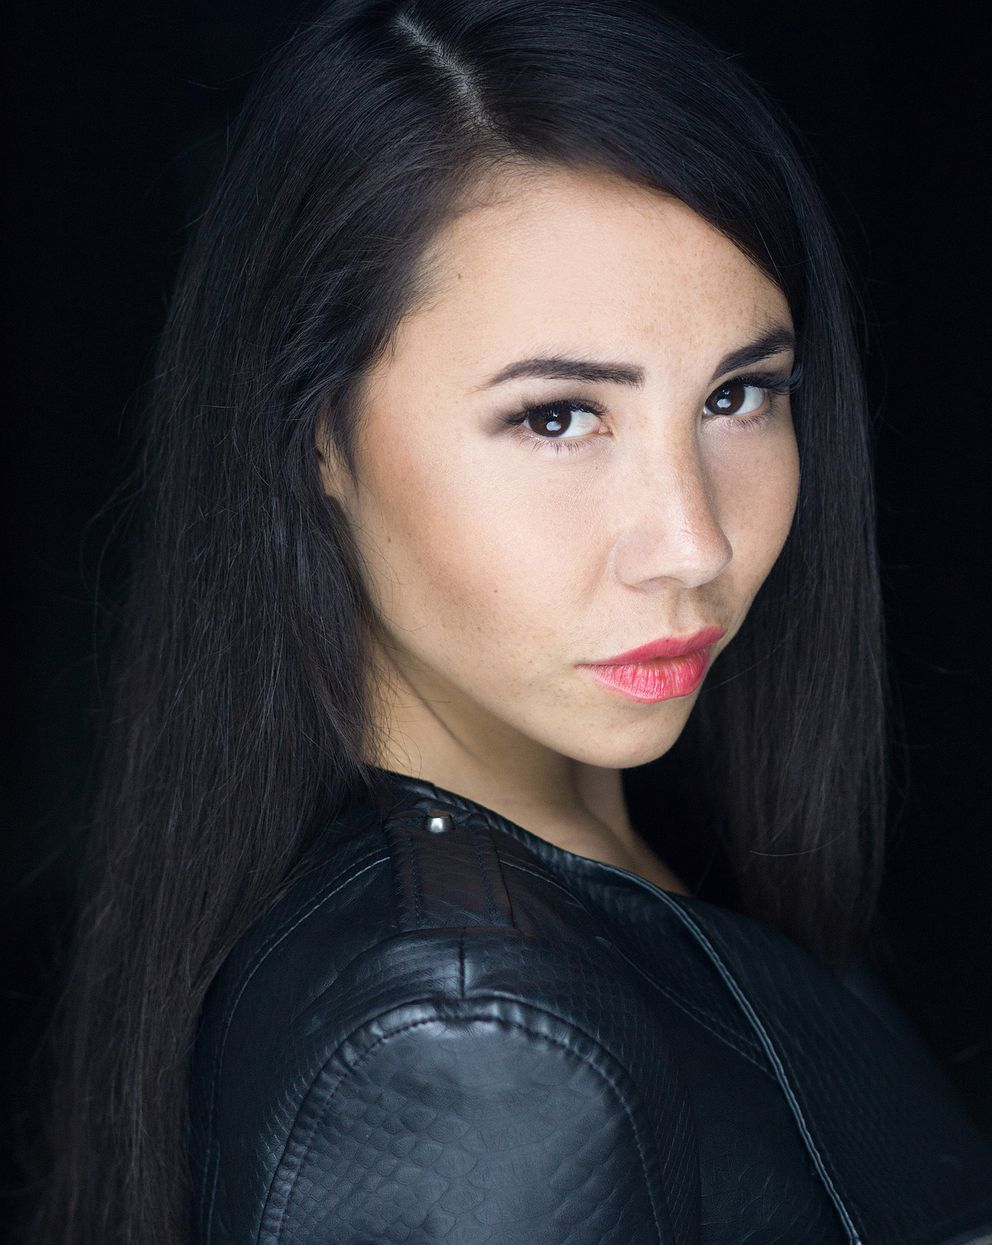 Inuit actress plays lead role in 'Twilight Zone' episode set in Alaska